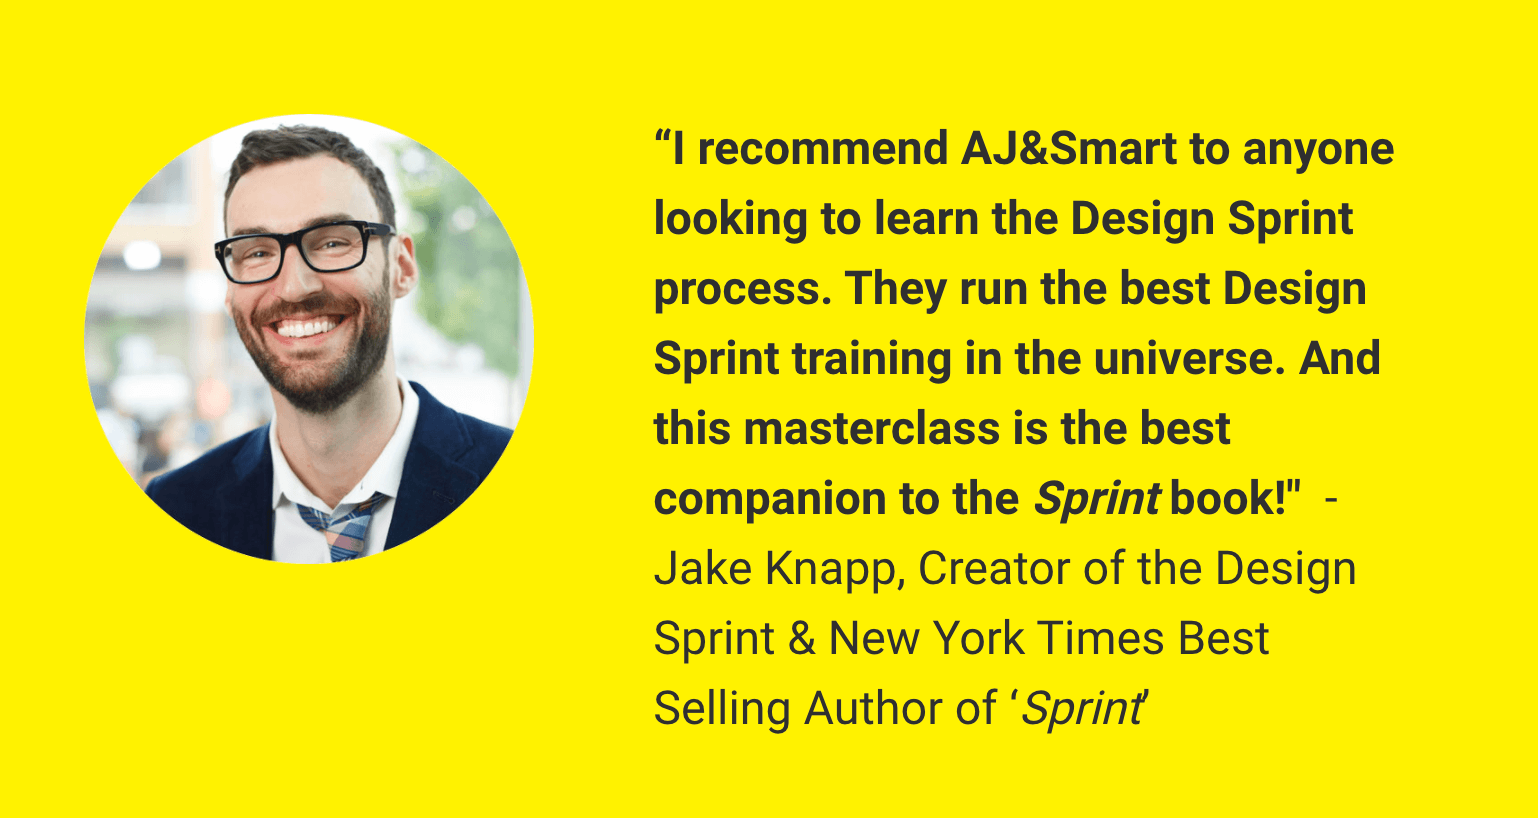 Jake Kanpp recommends Design Sprint Masterclass